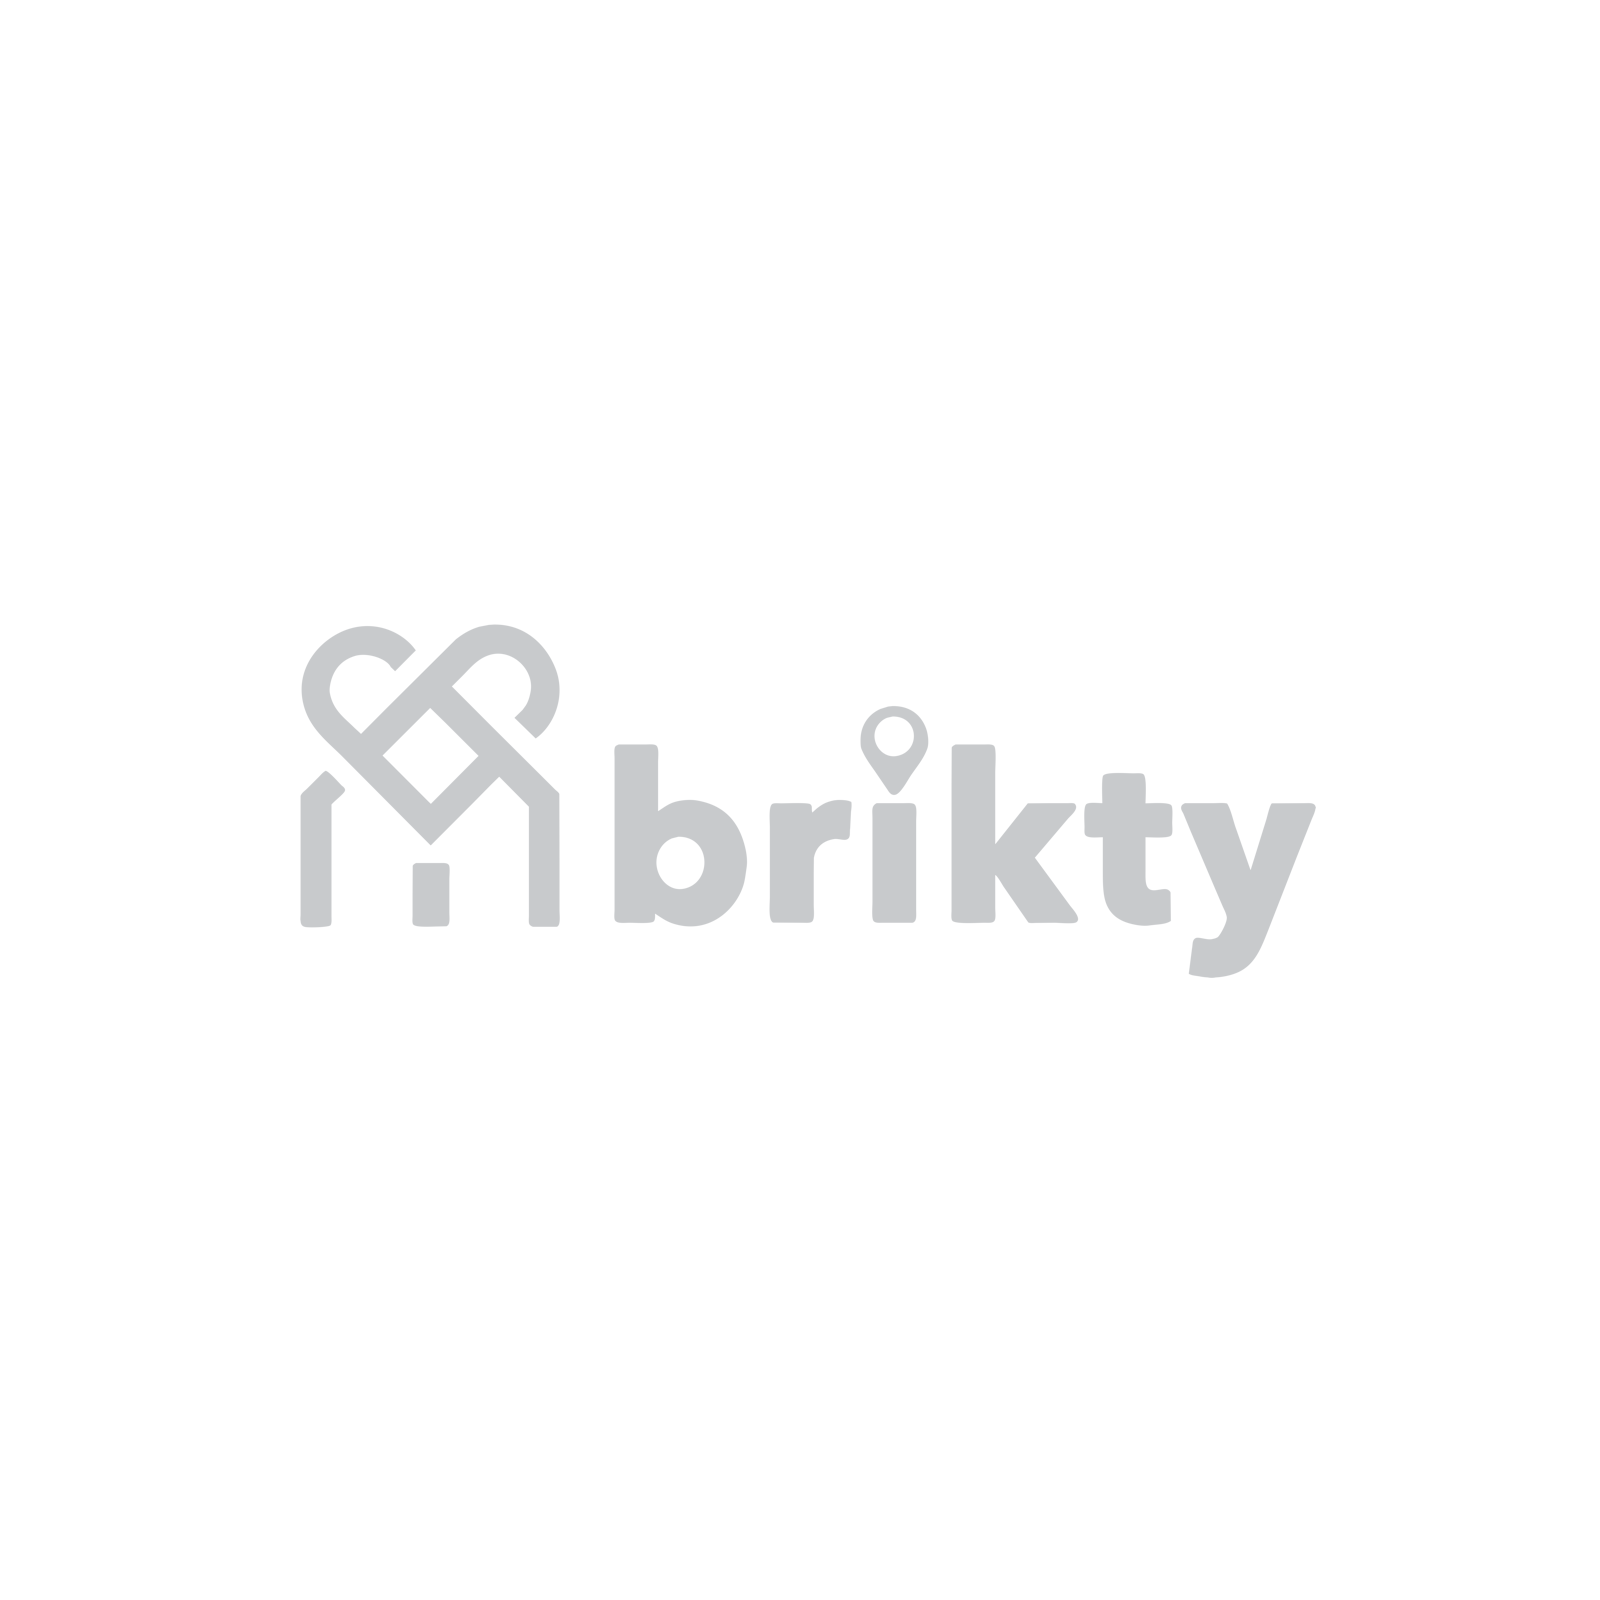 Copy of Brikty Logo